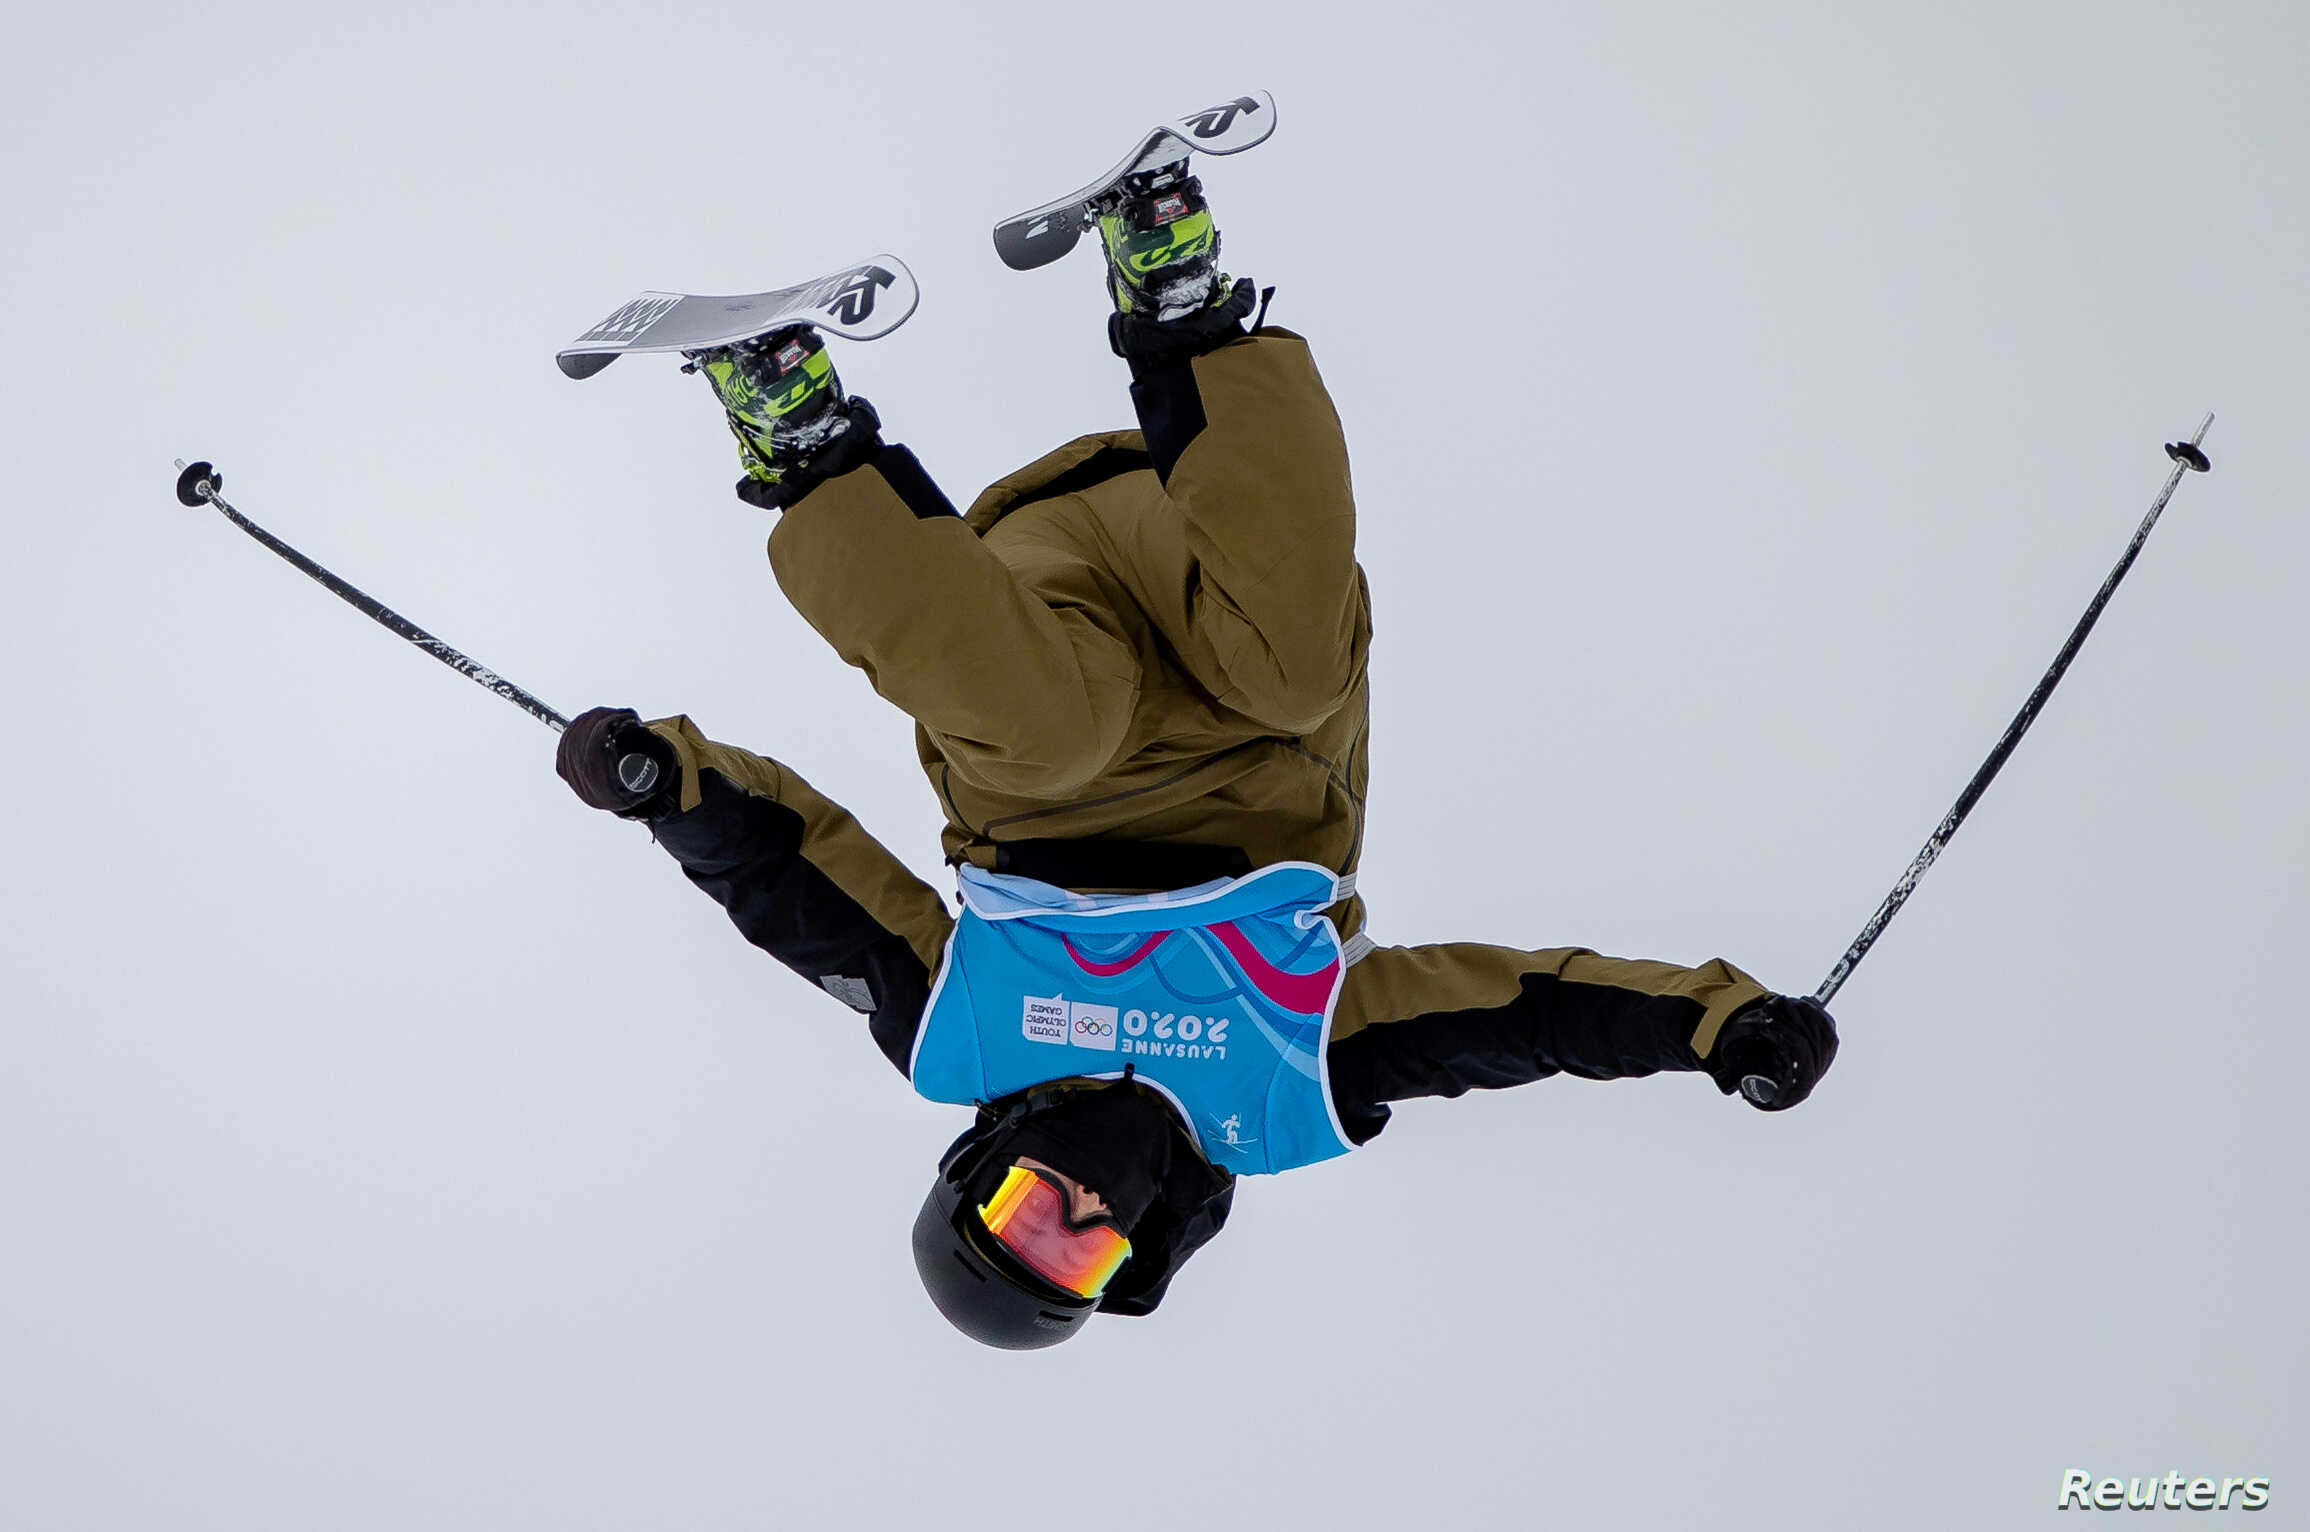 Hunter Carey of the U.S. trains for the freestyle skiing competition at the 2020 Winter Youth Olympics in Leysin Park, Leysin, Switzerland, Jan. 17, 2020.